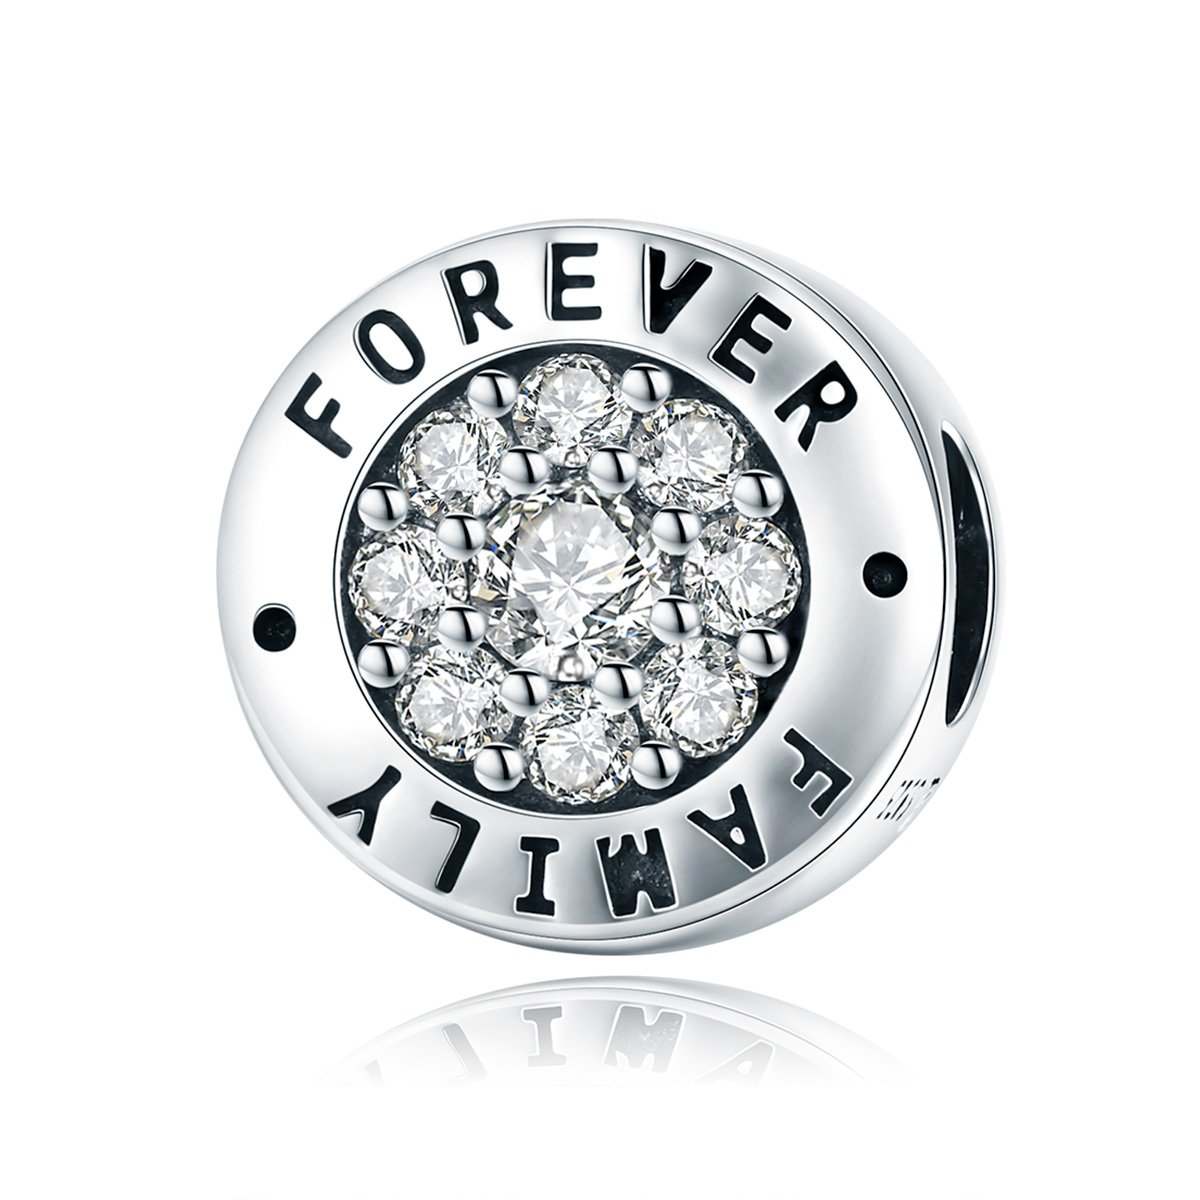 WOSTU 925 Sterling Silver Family Forever Bead Charms fit Charm Bracelets Cubic Zirconia Pendant Charms by WOSTU